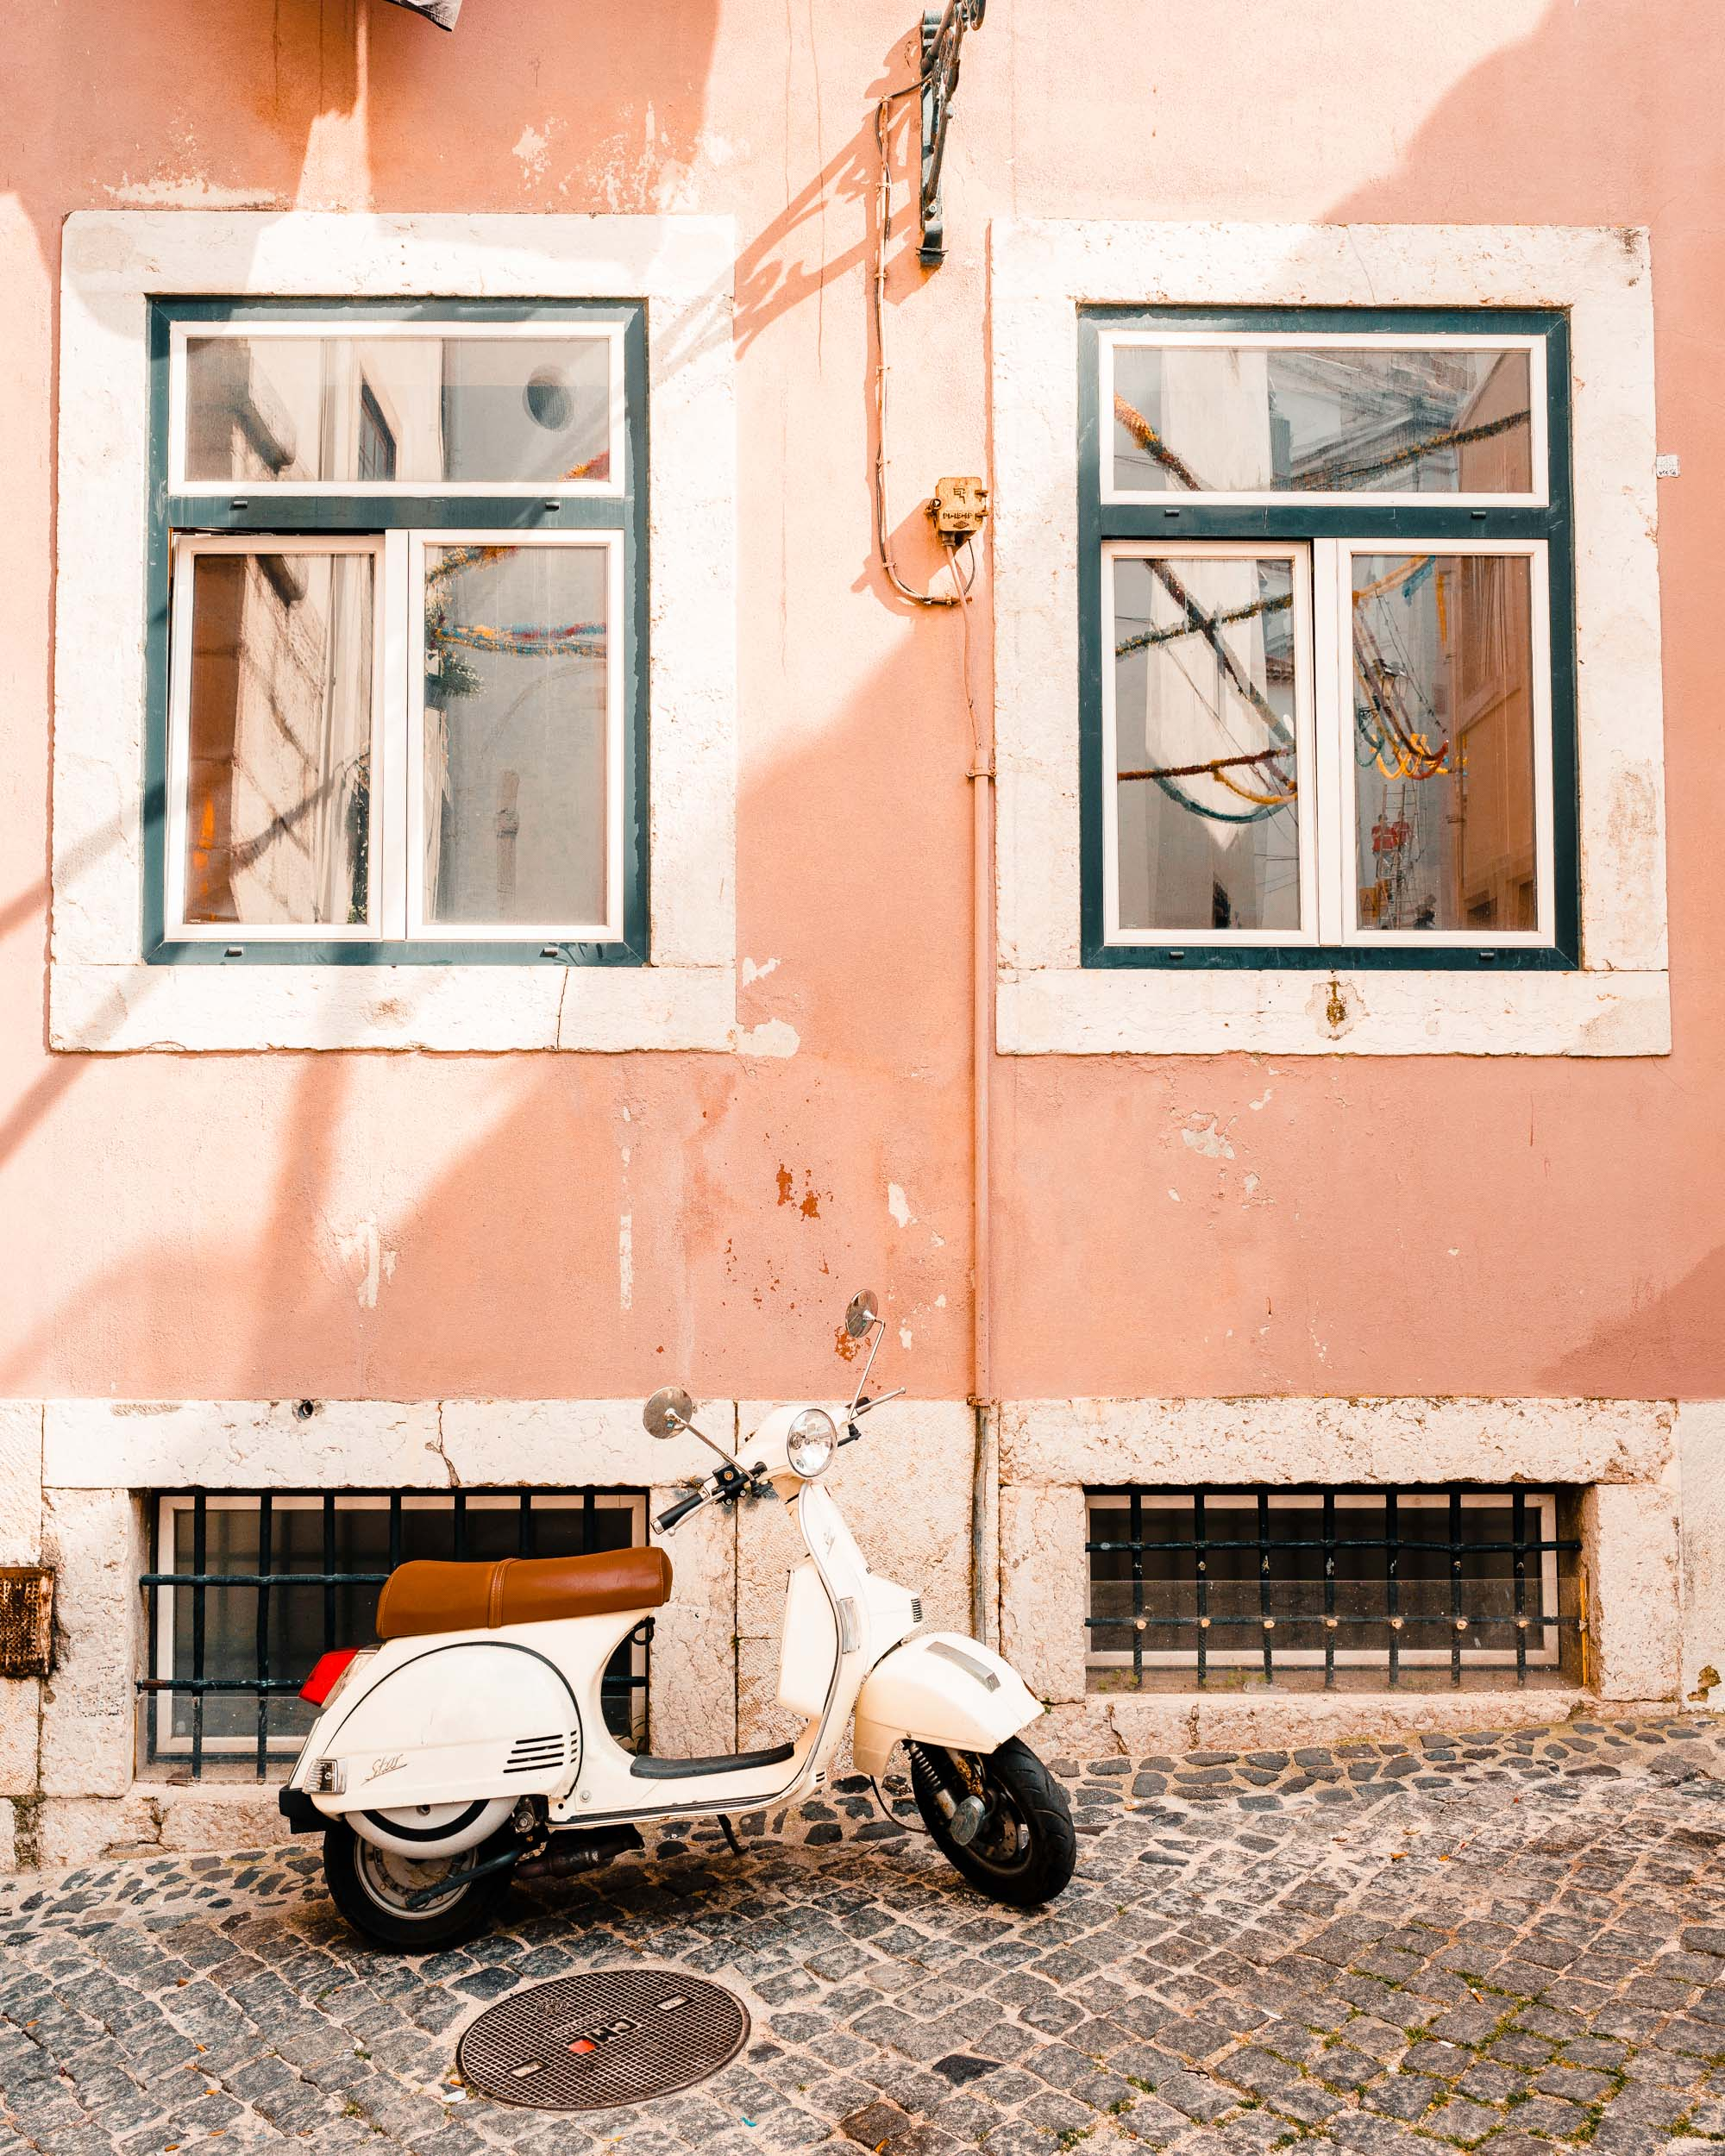 White motorcycle in front of a pink wall in Alfama, Lisbon, Portugal | Lisbon Travel Guide via Find Us Lost